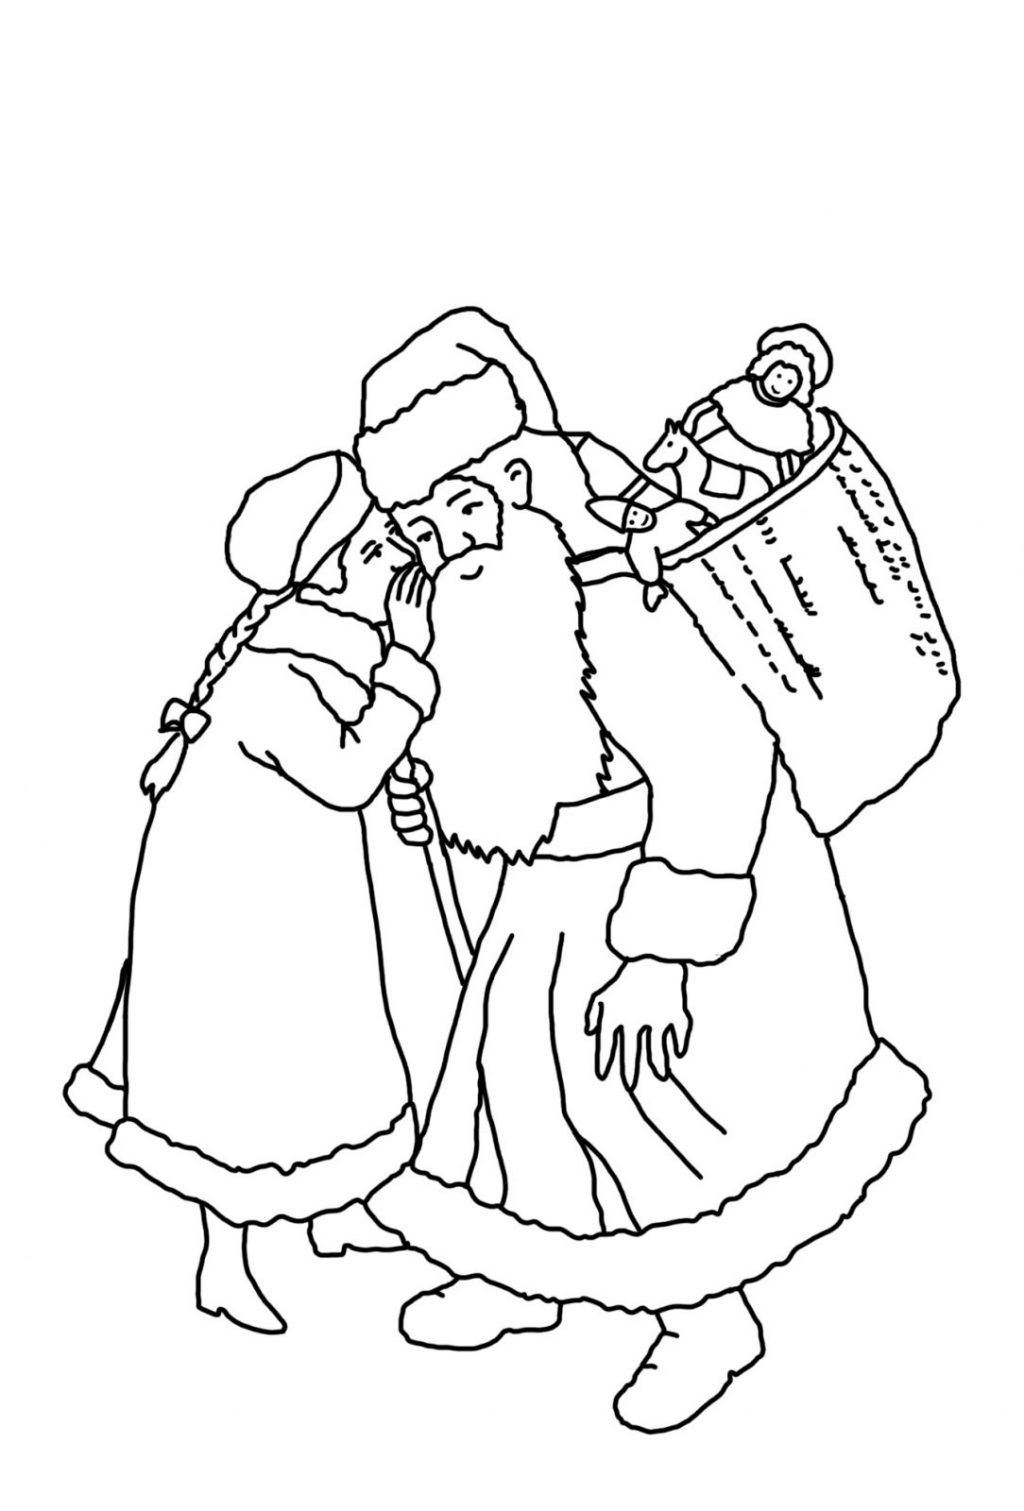 Jesus Christmas Coloring Pages Coloring Books Easy Christmas Coloring Pages Cookies Book For